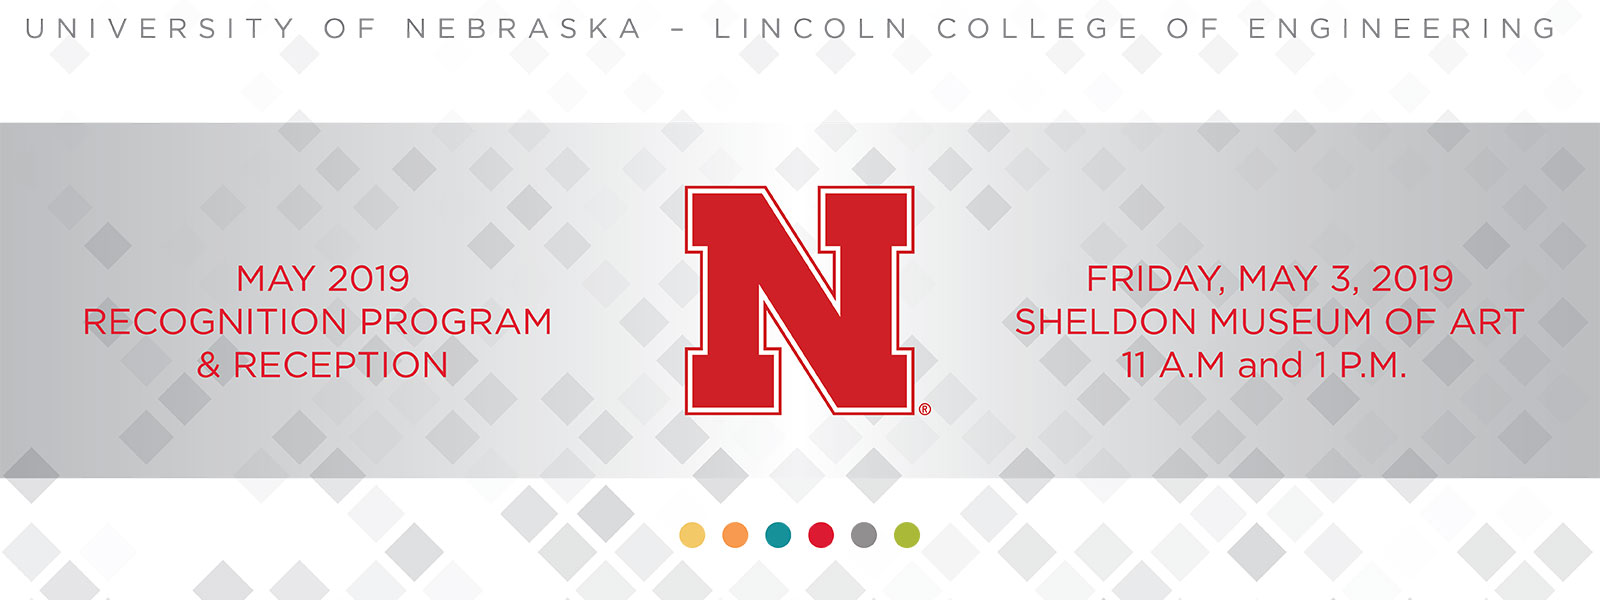 University of Nebraska-Lincoln, College of Engineering May 3, 2019 Recognition Program and Reception. Sheldon Museum of Art. 11a.m. and 1 p.m.